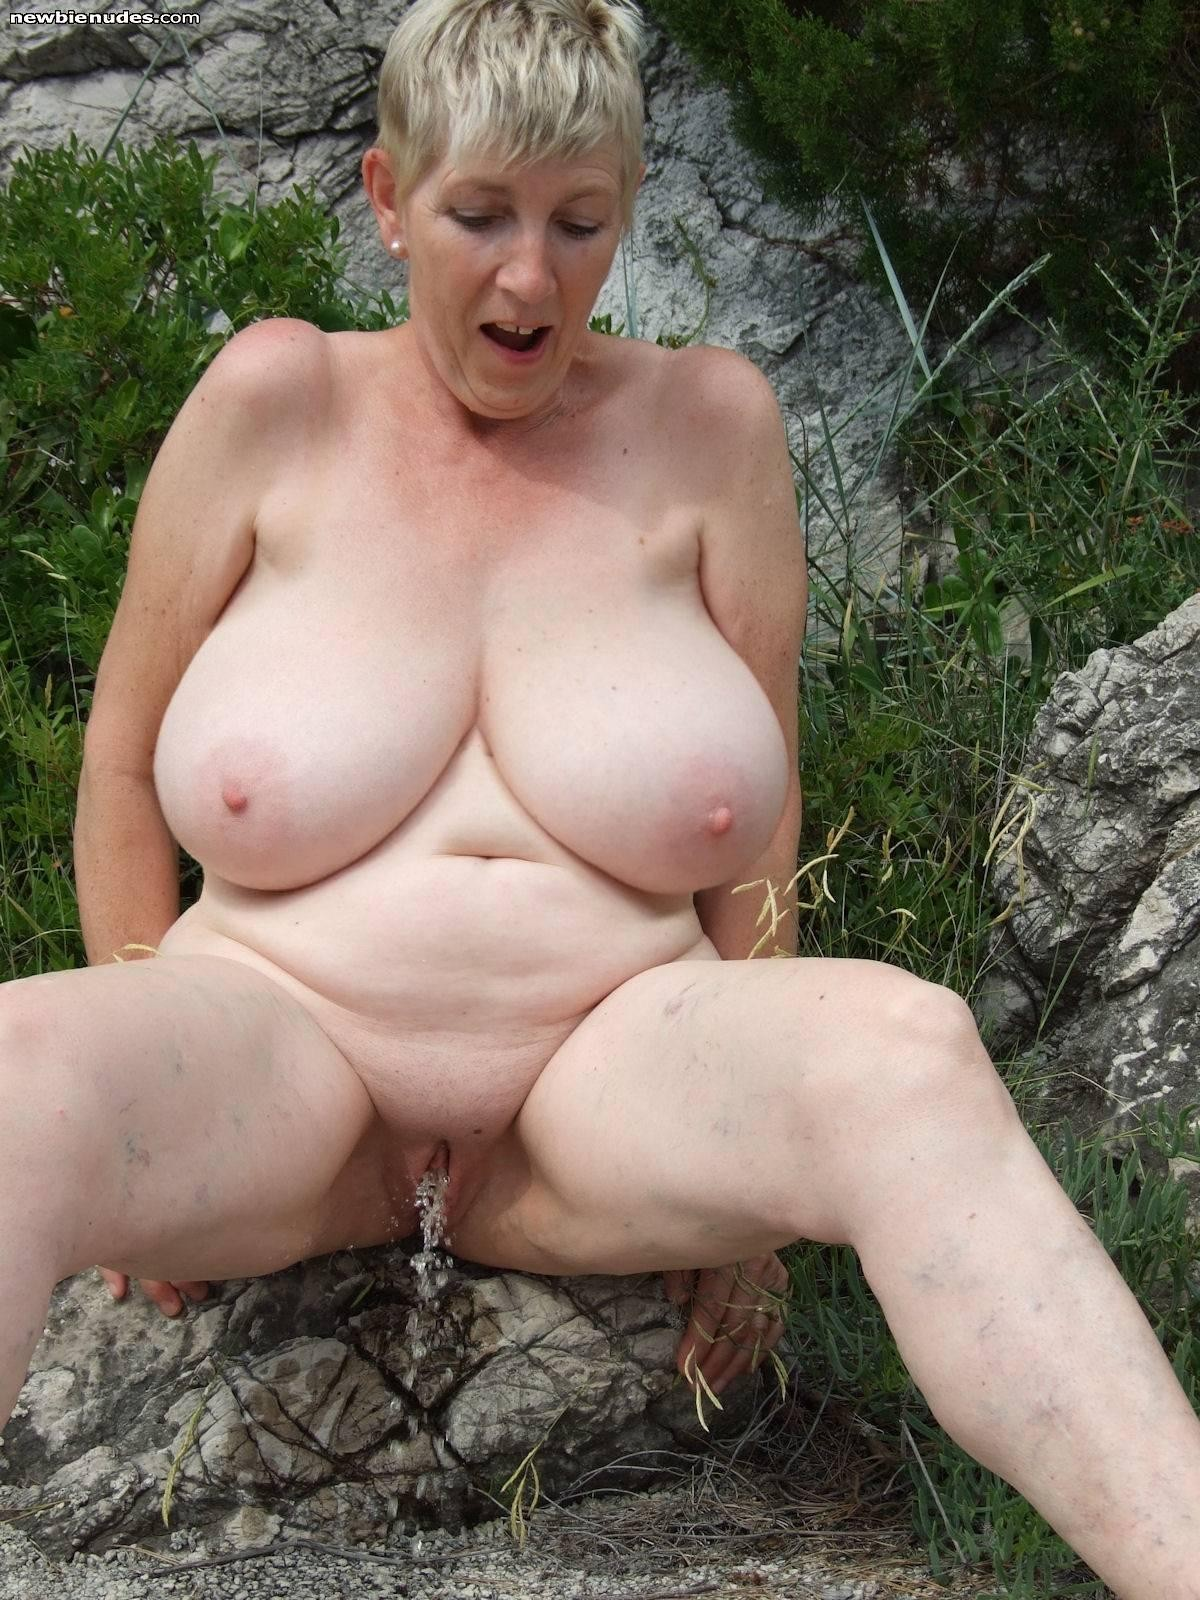 Grandma has big tits